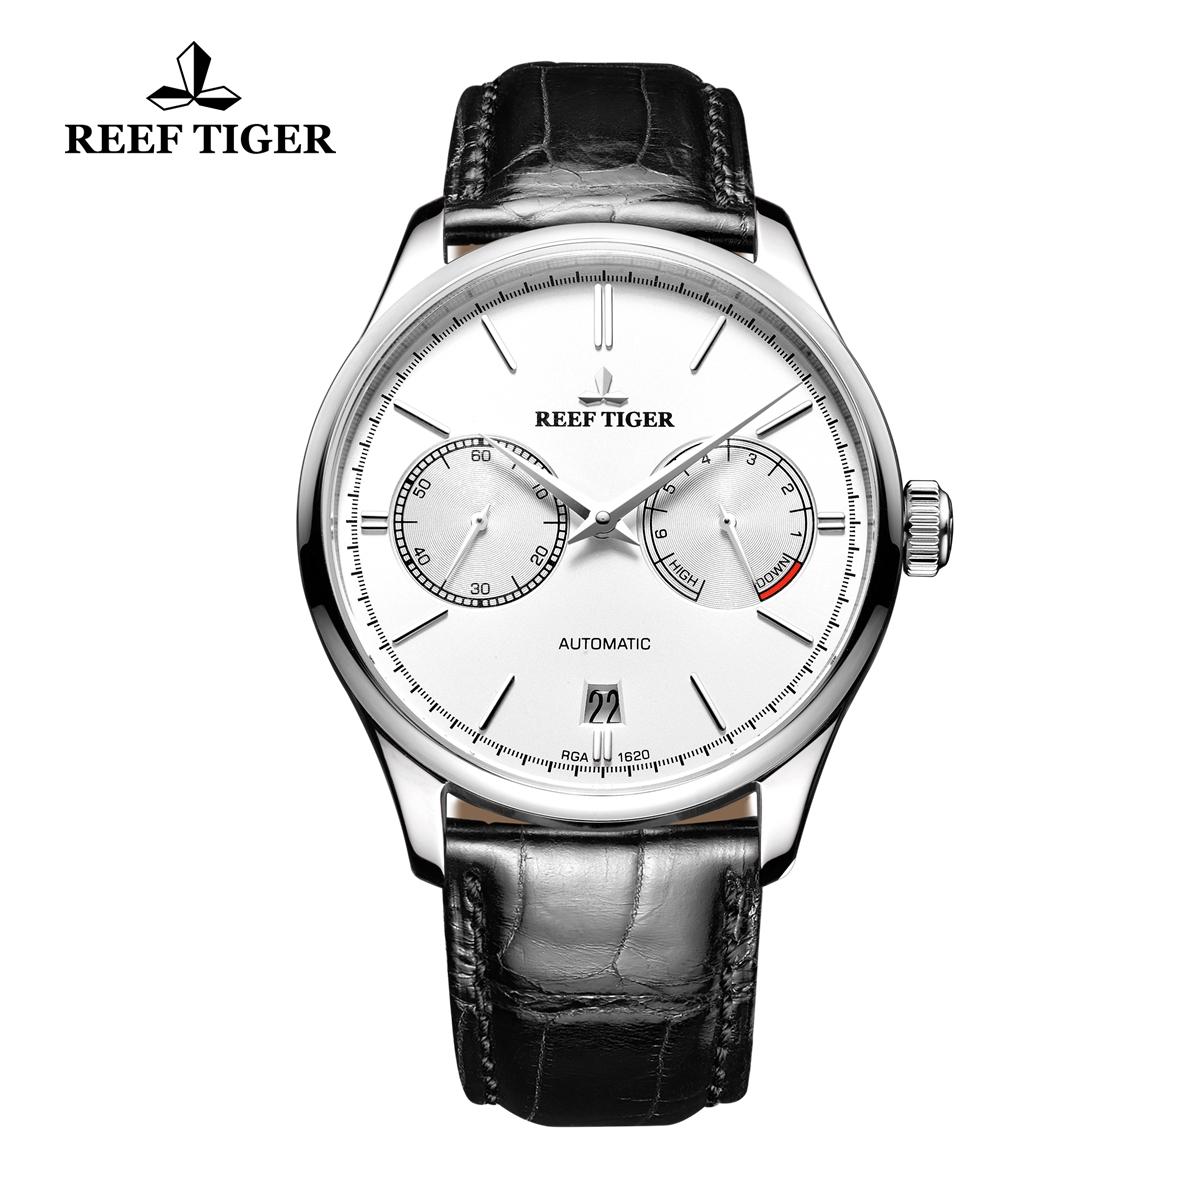 Reef Tiger Claiss Watch Automatic Steel Case White Dial RGA1620-YWB